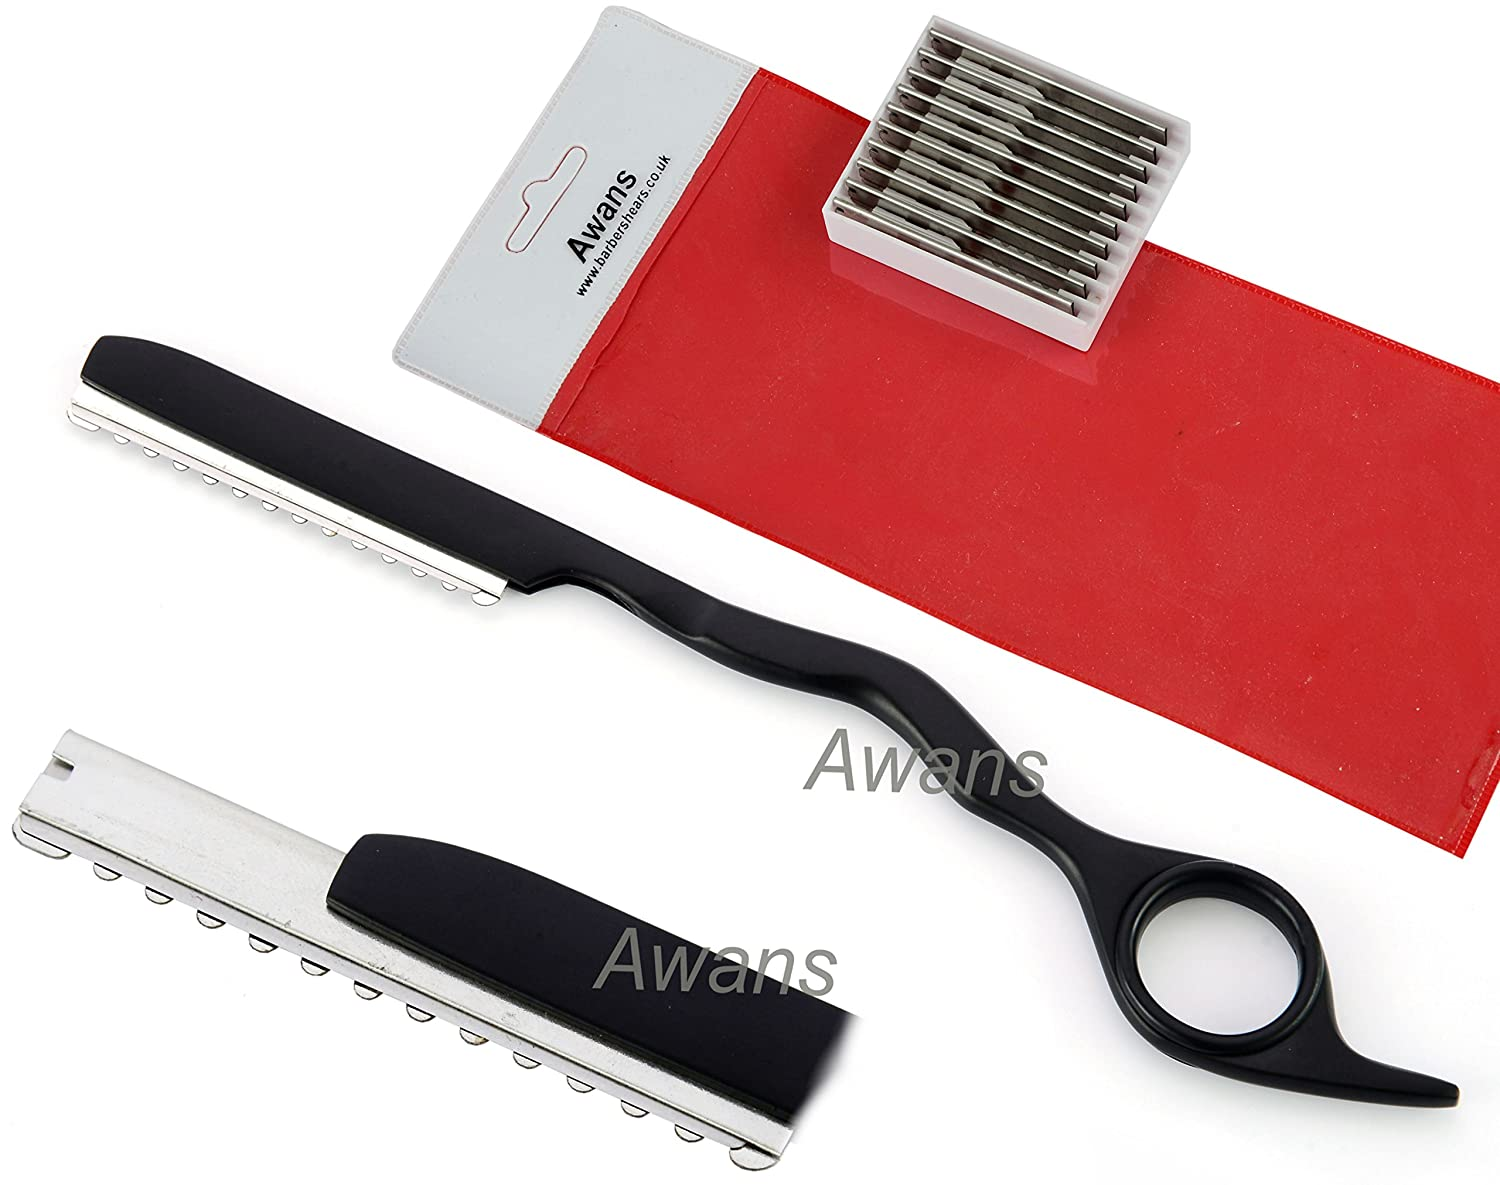 Hair Thinning Razor ,Hair Styling Razor, Feather Styling Razor, Thinner Razor, Black + 10 Spare Thinning Blades Awans Rz11